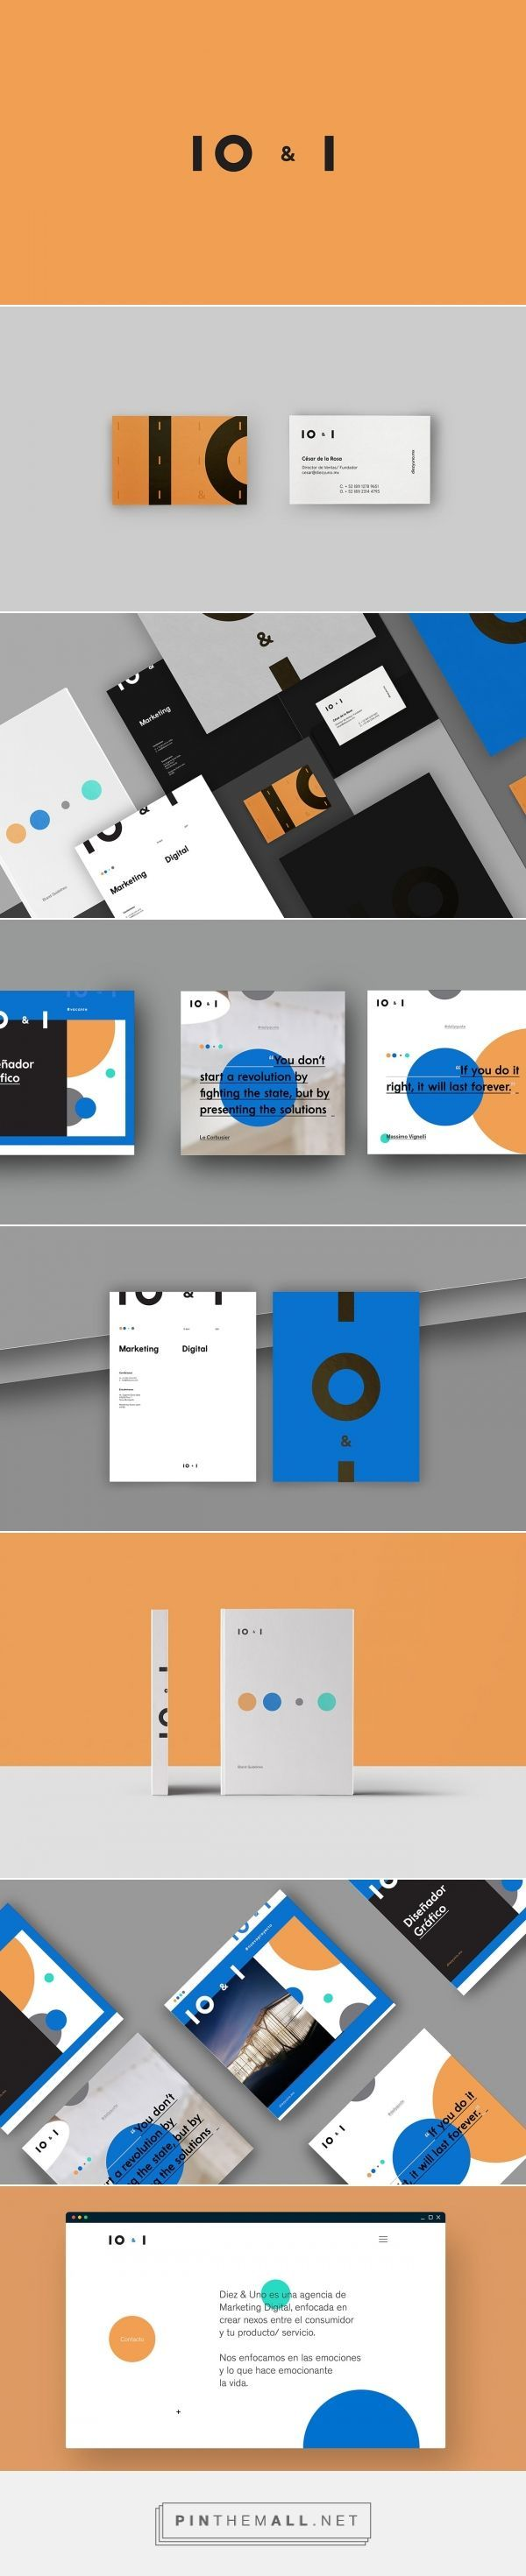 10 & Uno Digital Marketing Agency Branding by Sabbath | Fivestar Branding Agency – Design and Branding Agency & Curated Inspiration Gallery